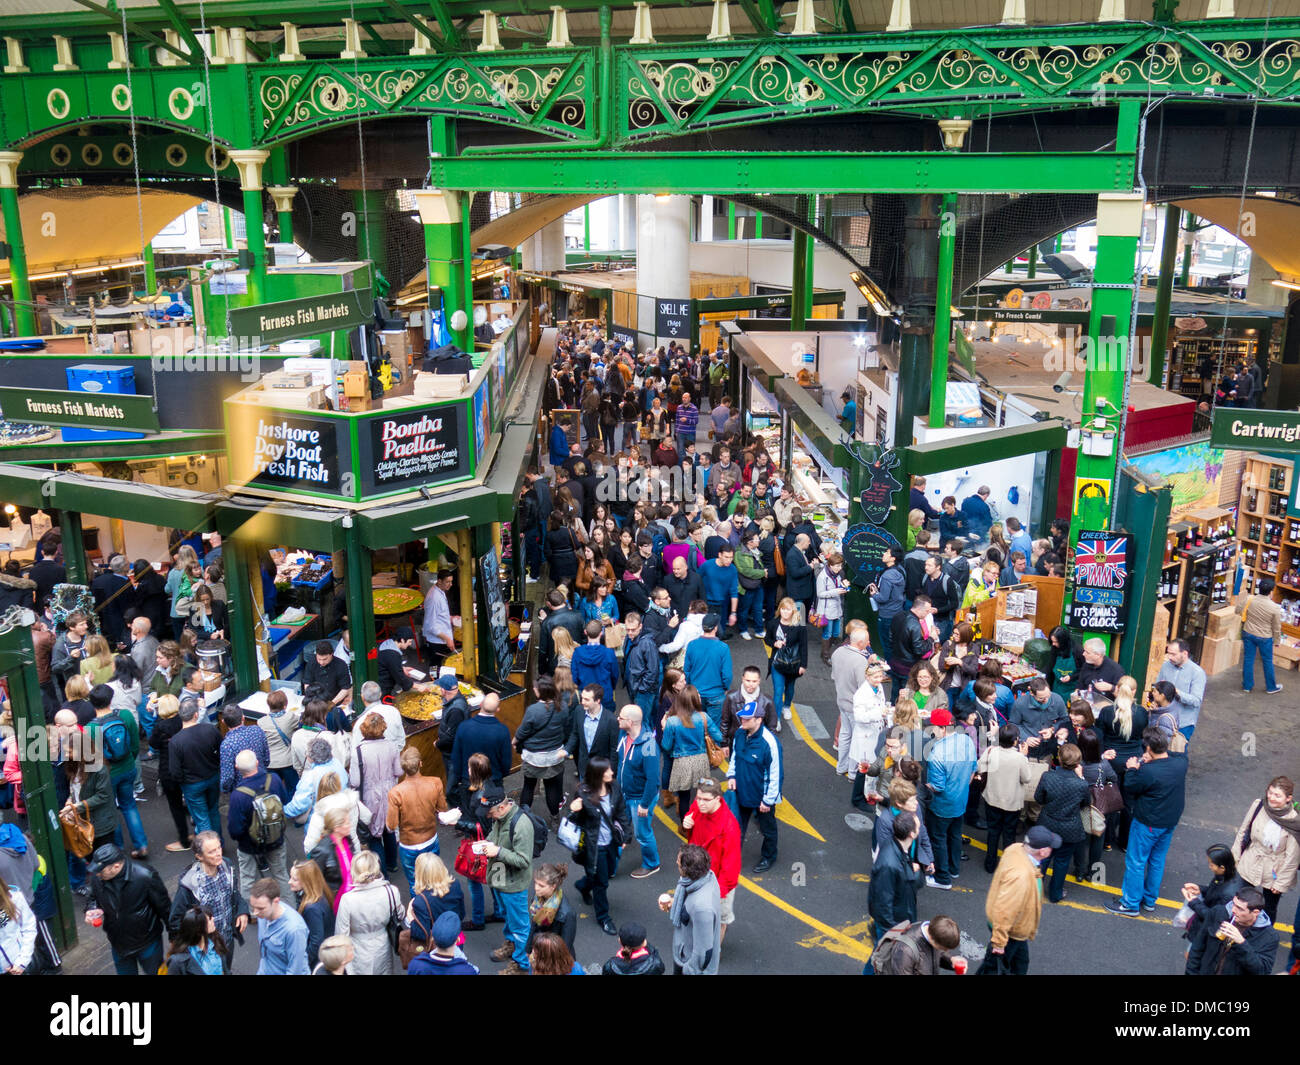 Borough Market, London, England, UK - Stock Image